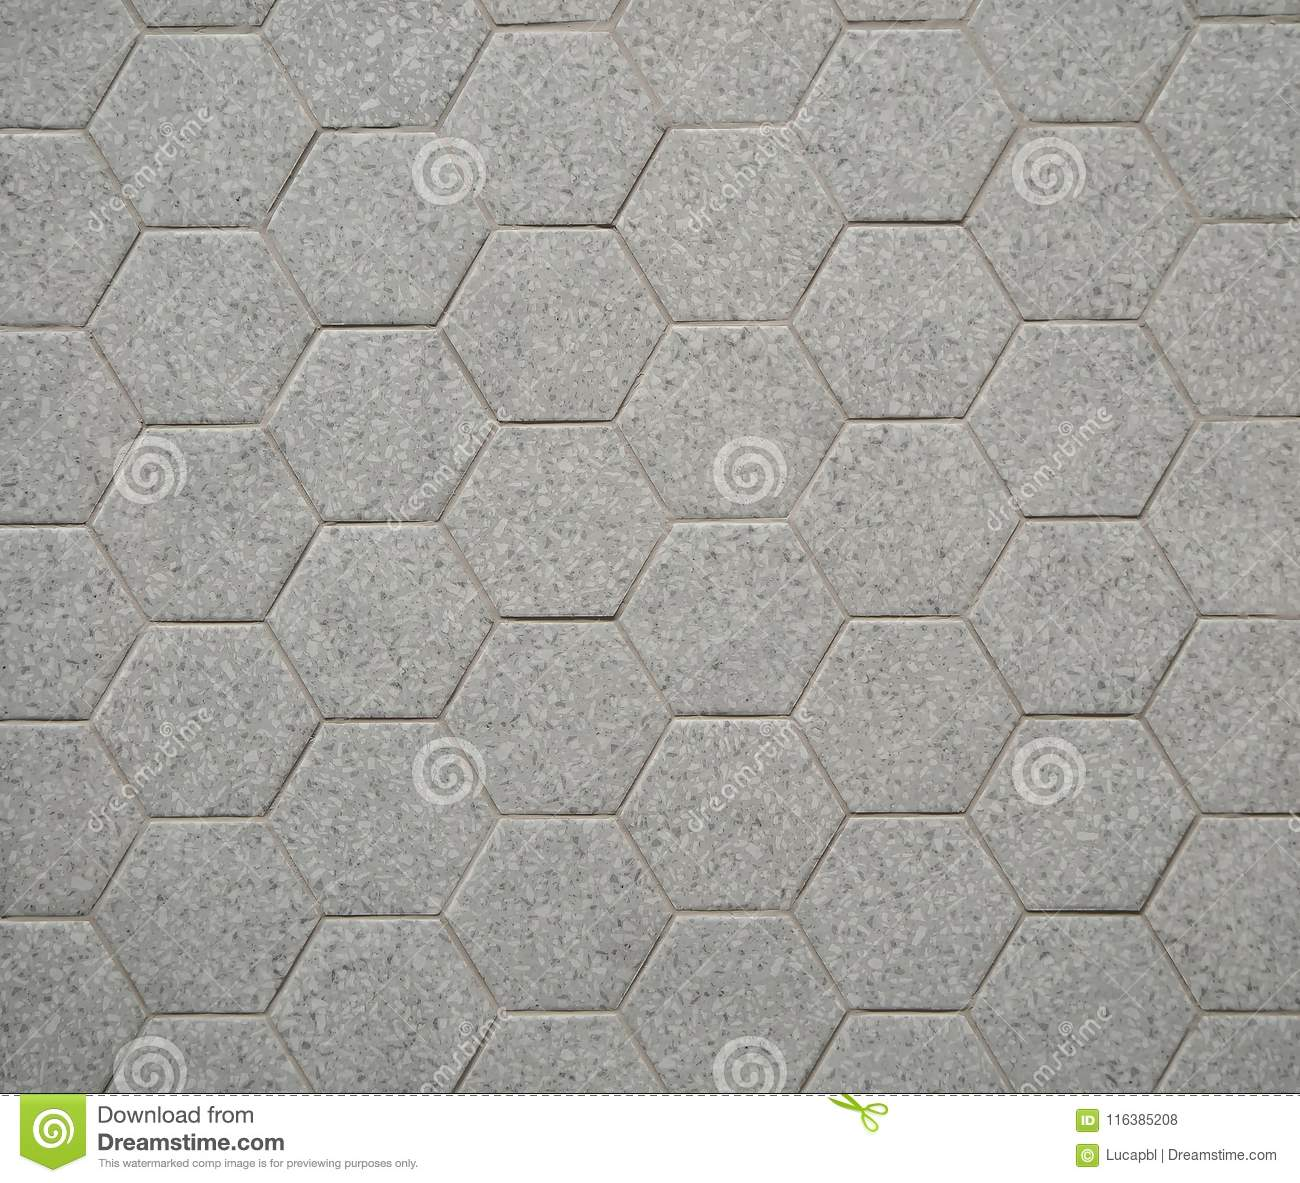 Gray hexagon stone tiles for interiors. They are used mainly for bathrooms, on wall or on floor